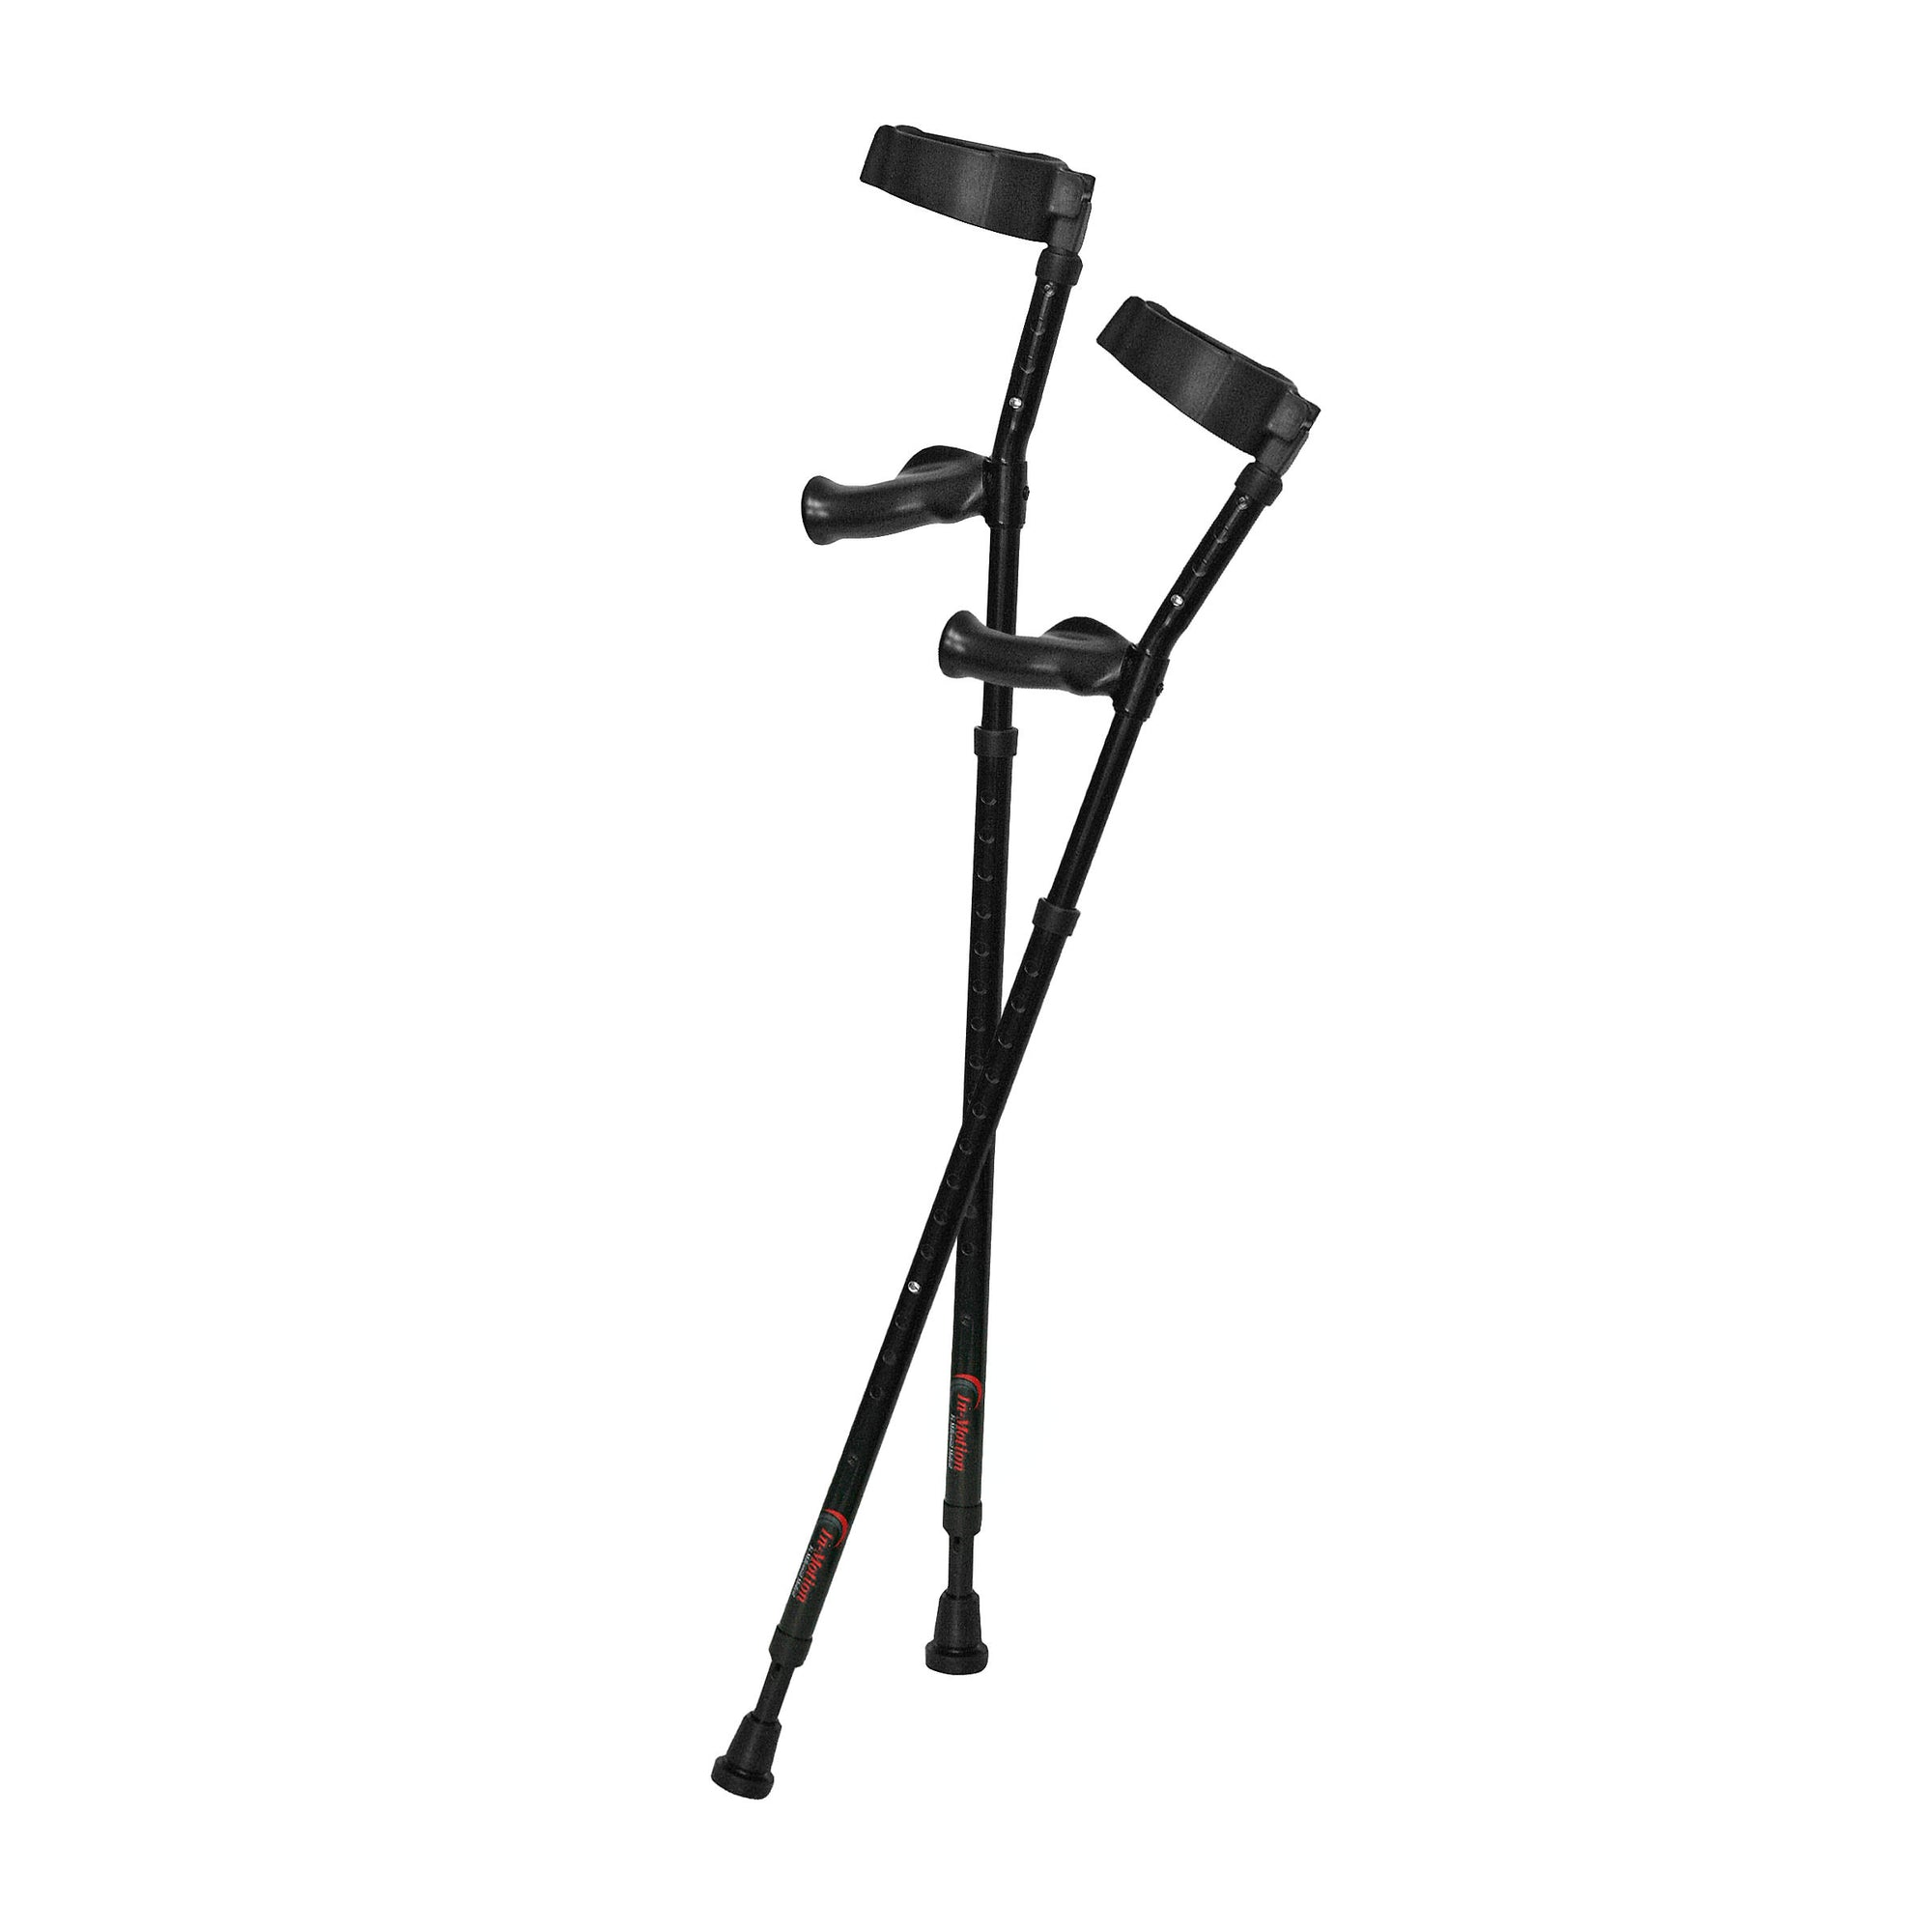 Millennial In-Motion Forearm Crutches, 1 Pair - Black